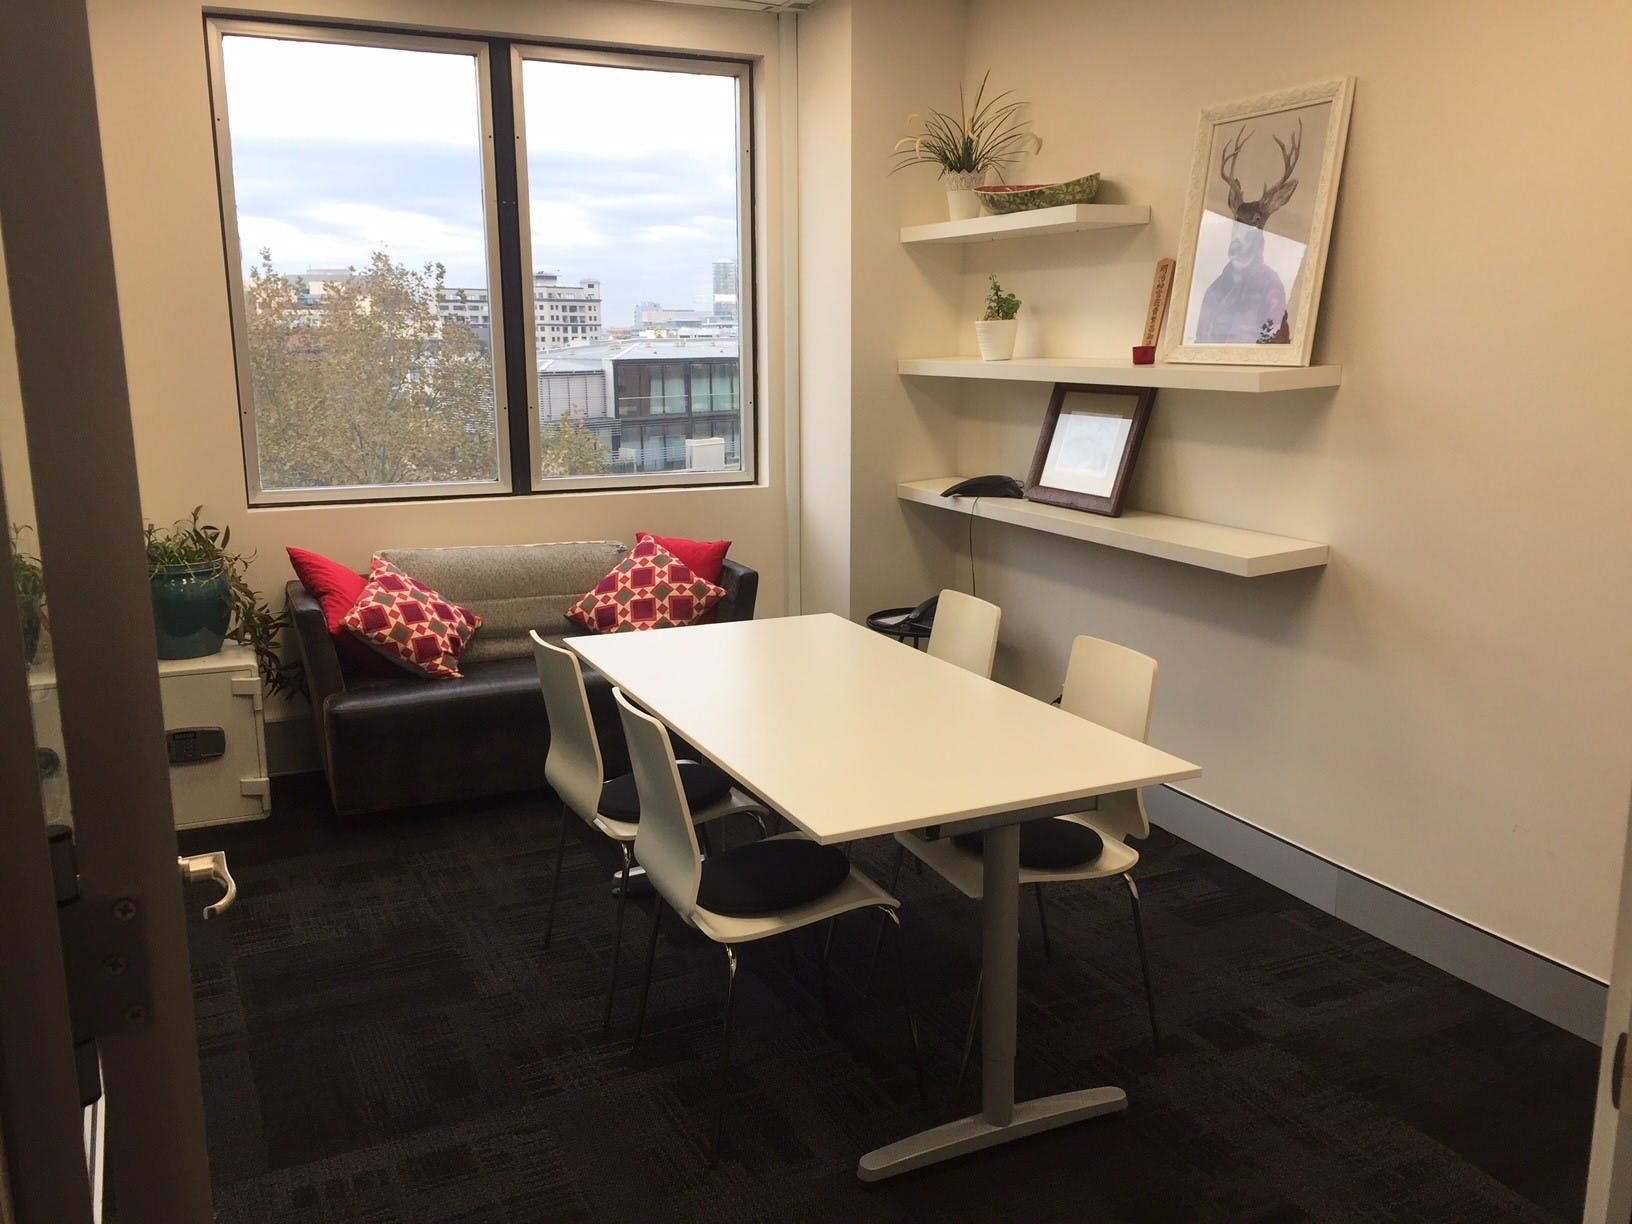 Executive Meeting Room, meeting room at Ruby Rooms, image 1